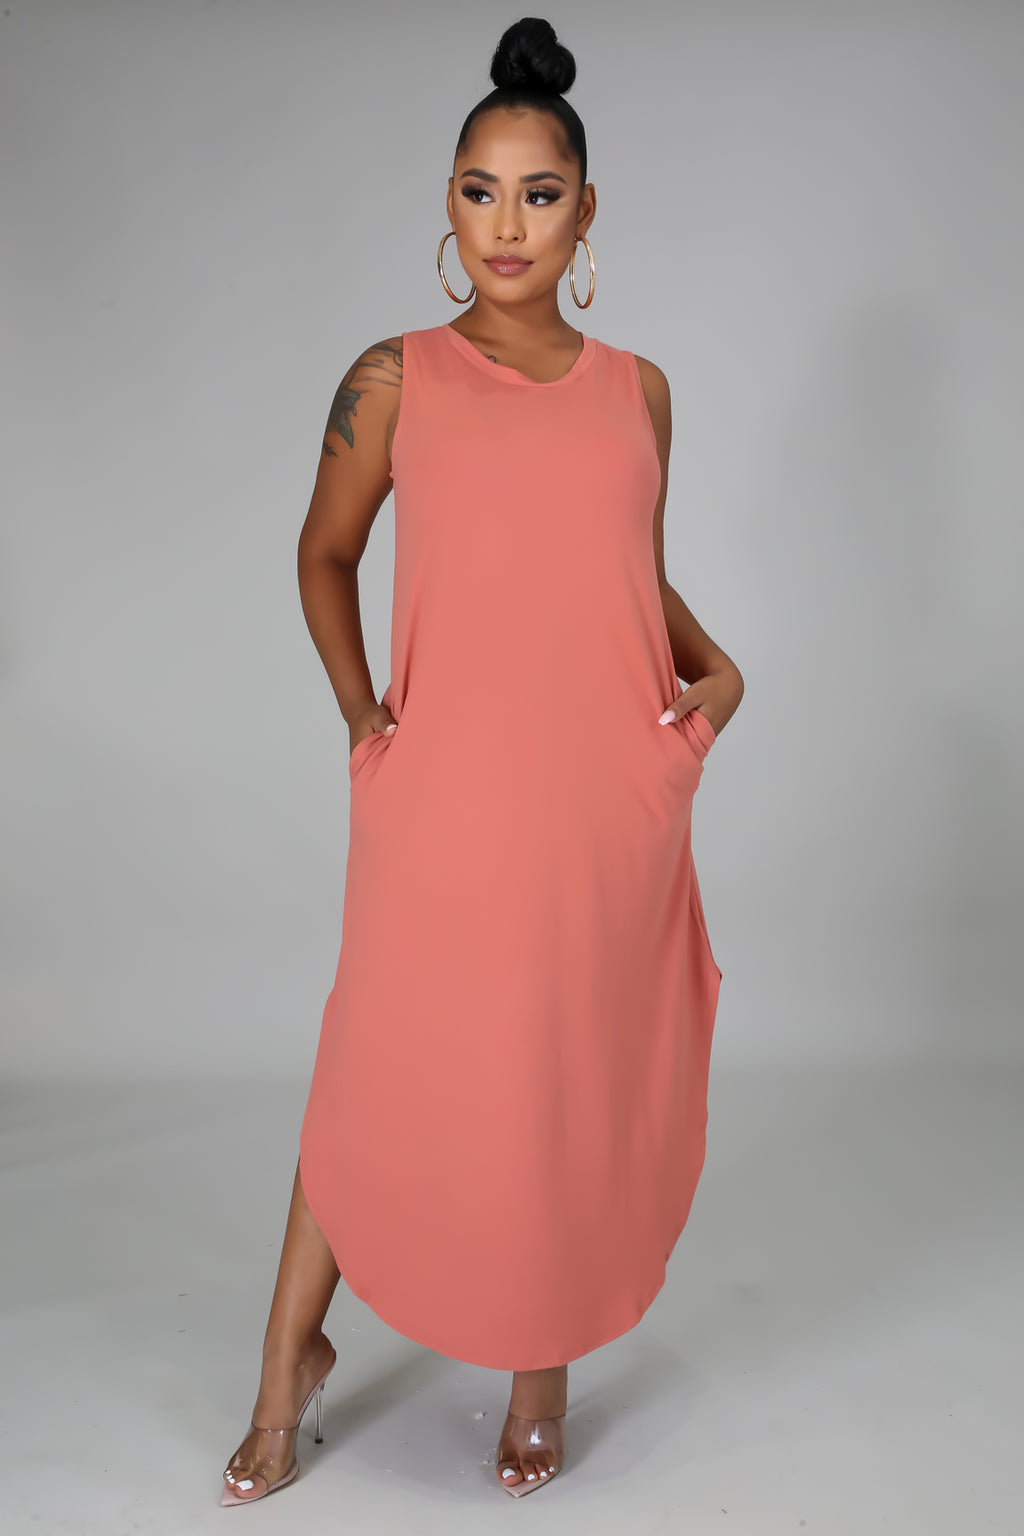 Waiting on You Dress - Classy & Sassy Styles Boutique